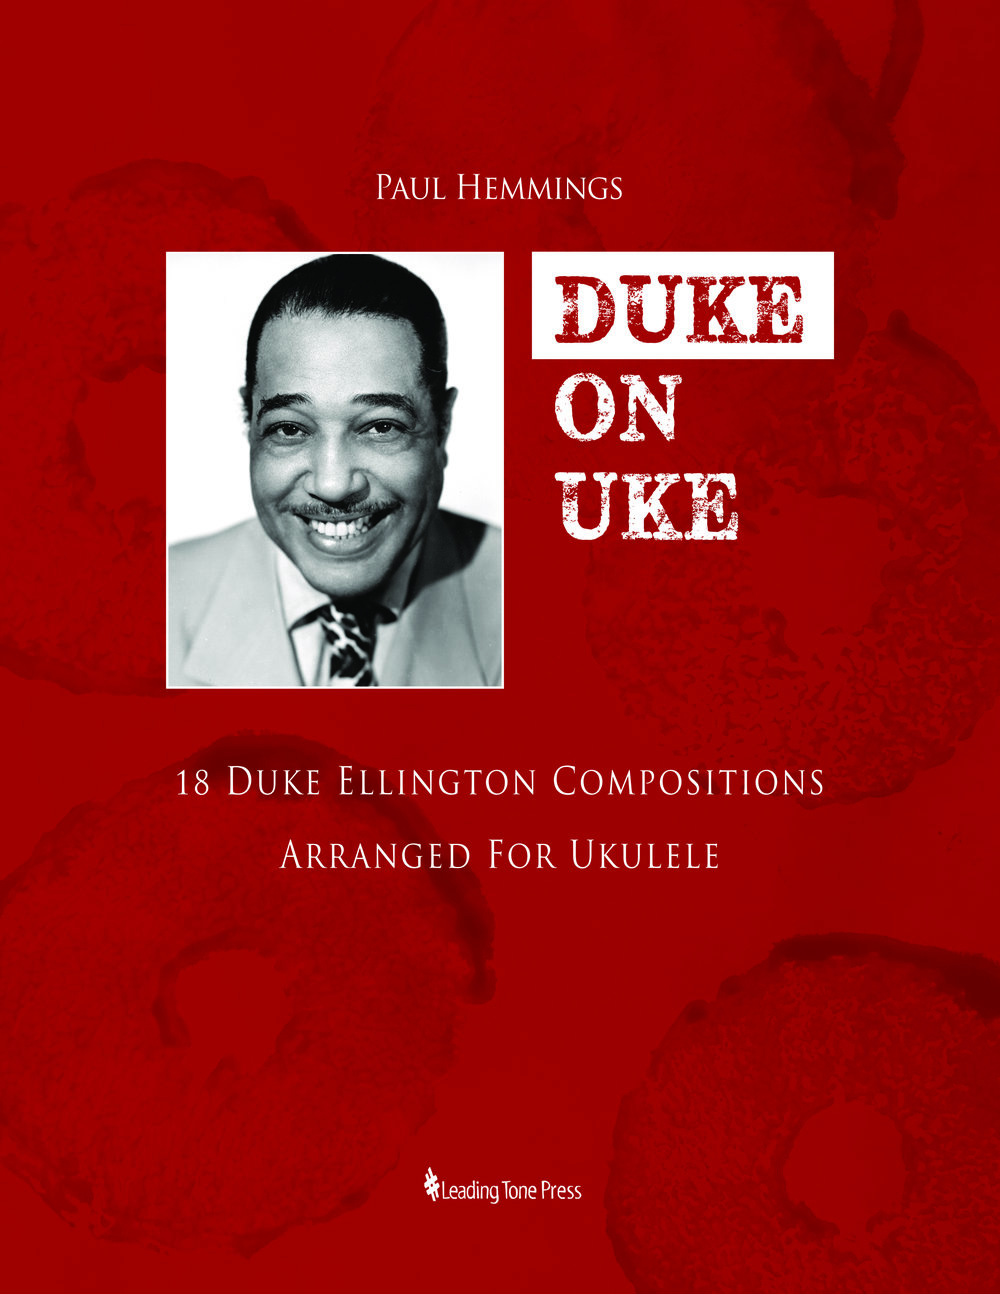 DUKE ON UKE book cover.jpg